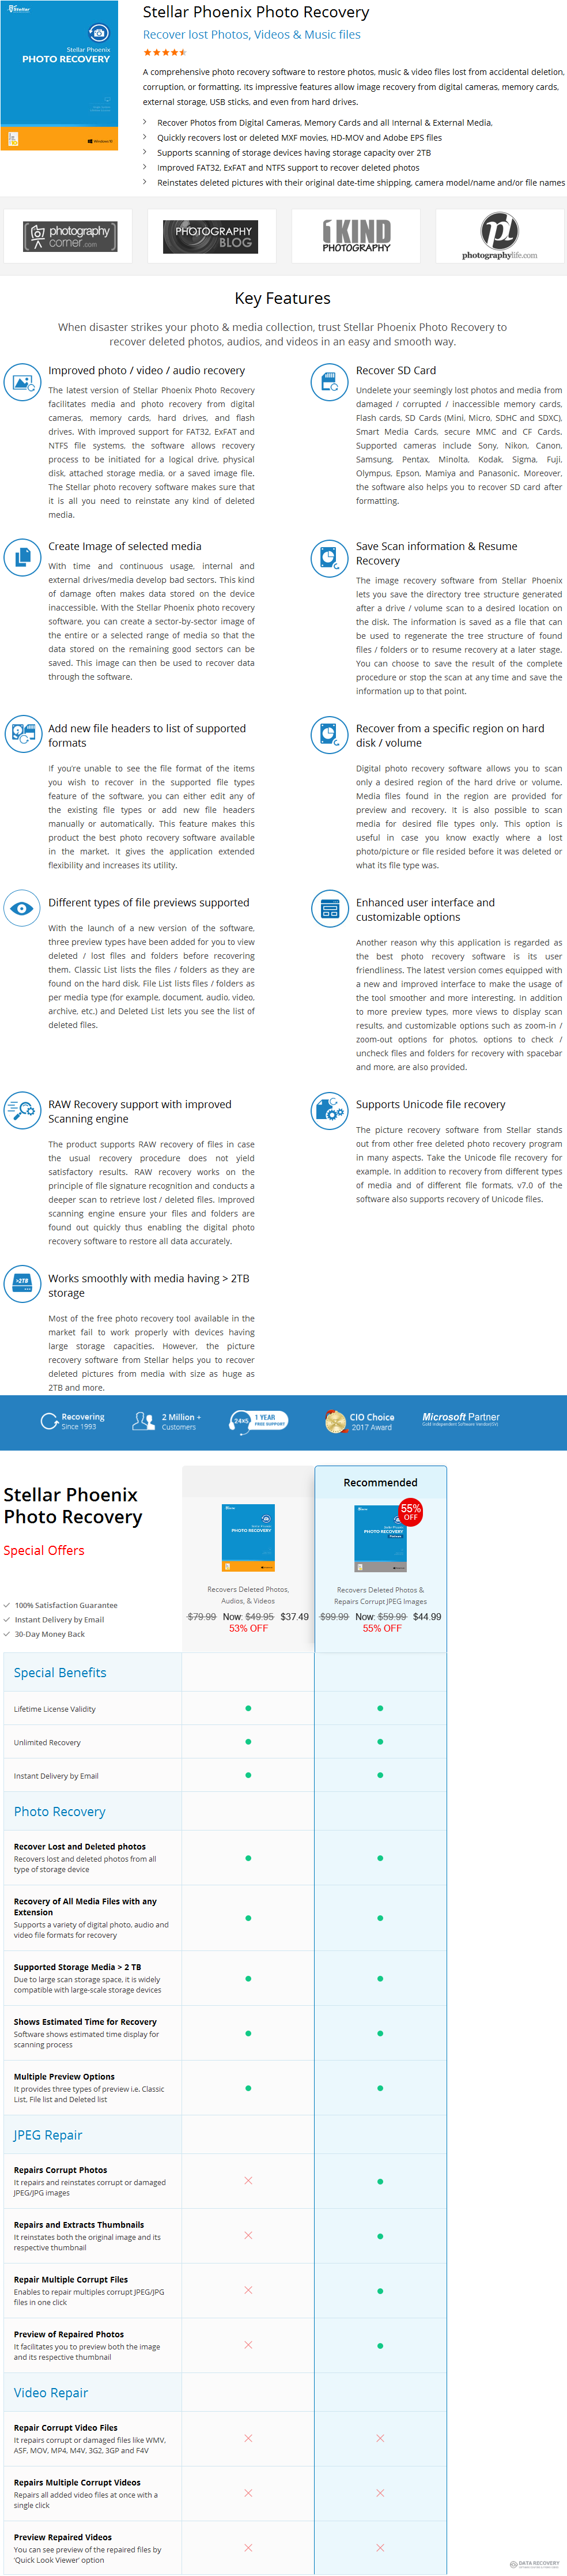 Stellar Phoenix Photo Recovery (Windows) Discount Coupon Code